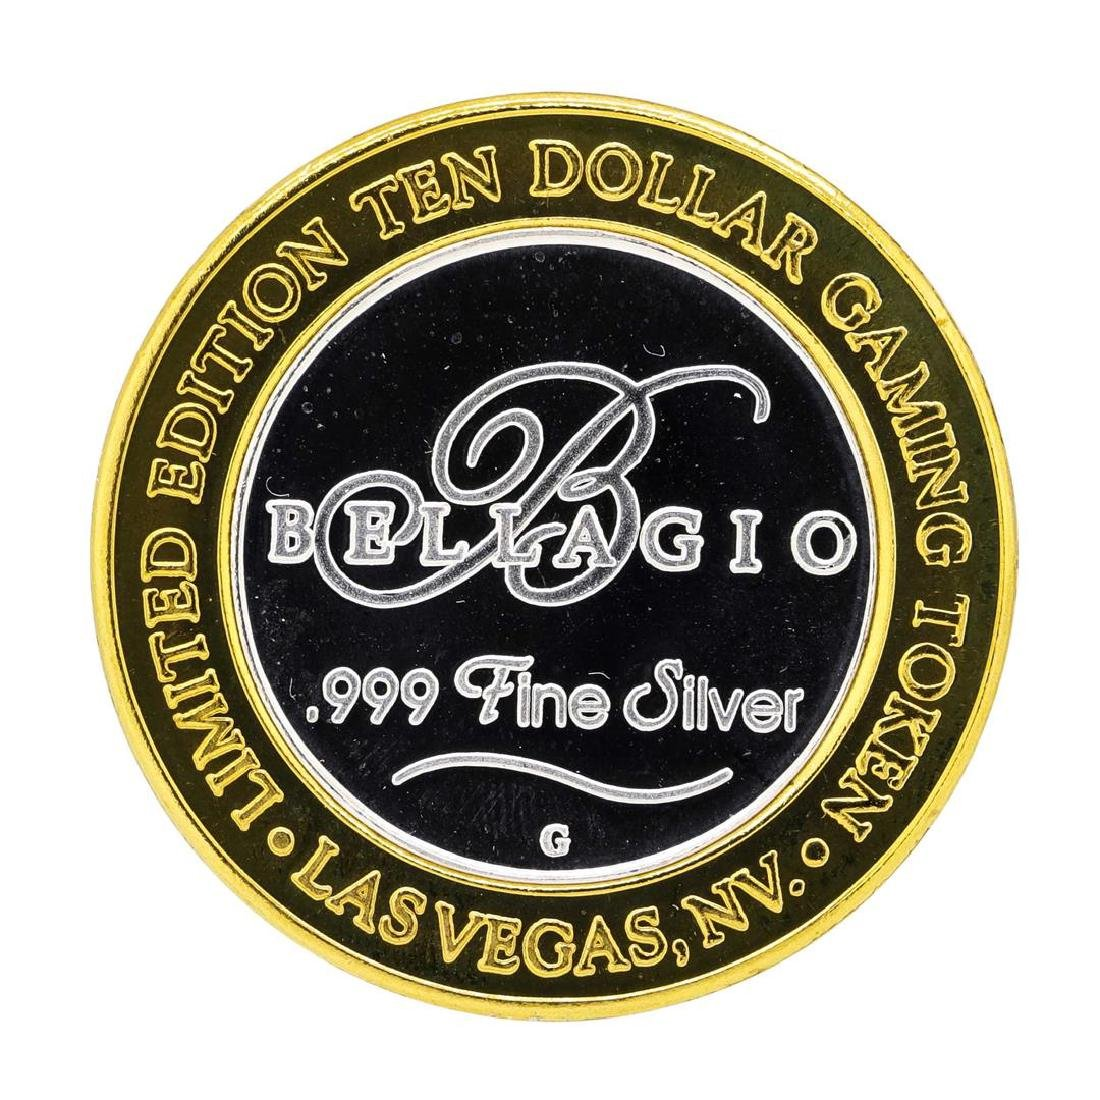 .999 Silver Bellagio Las Vegas, Nevada $10 Casino - 2